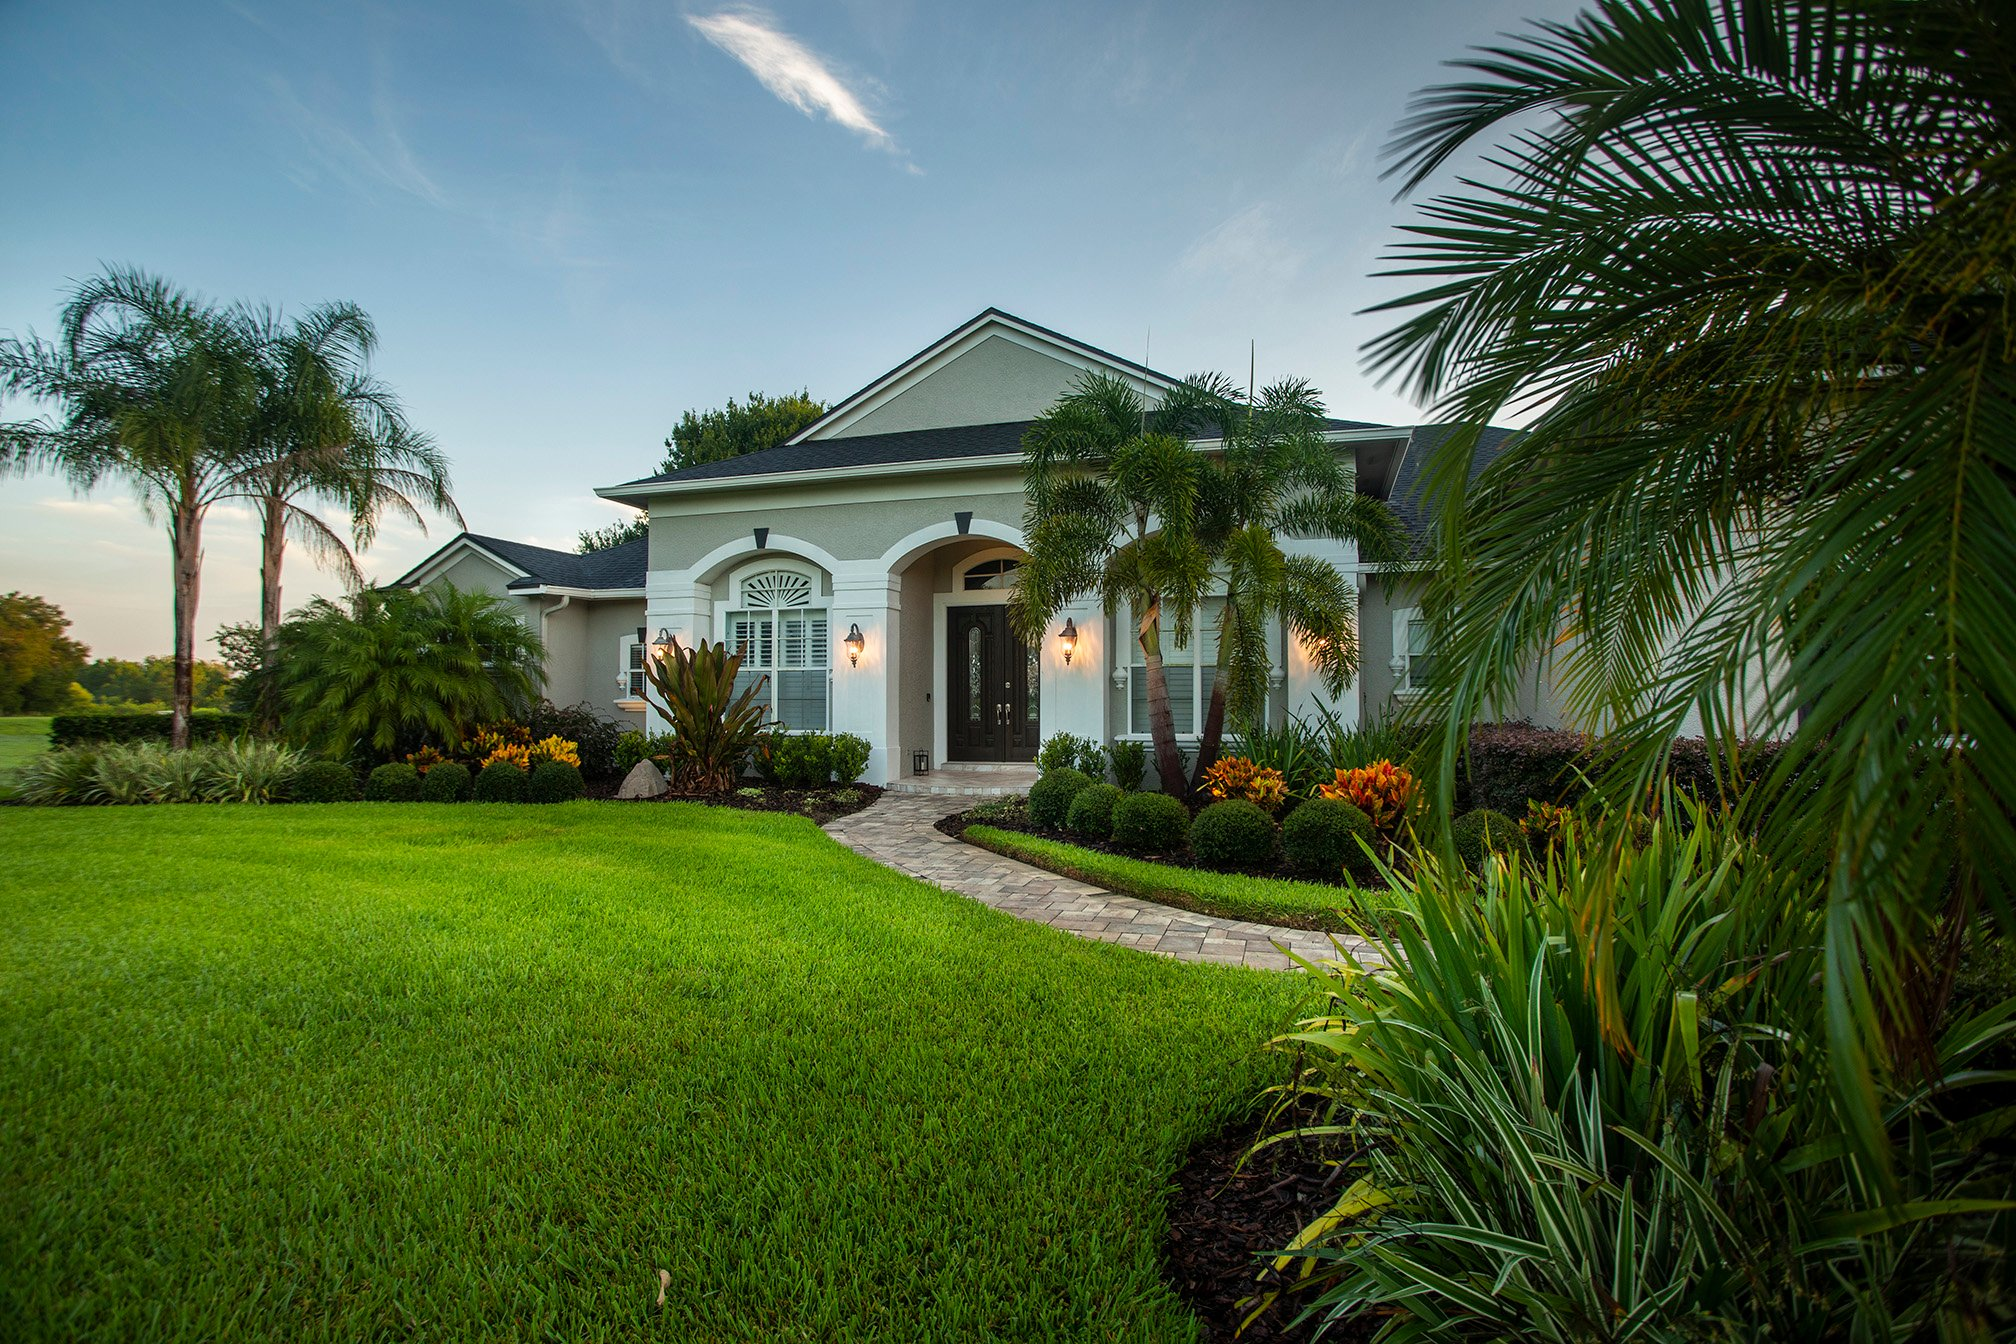 20 Great Ideas For The Best Front Yard Landscaping At Your Orlando